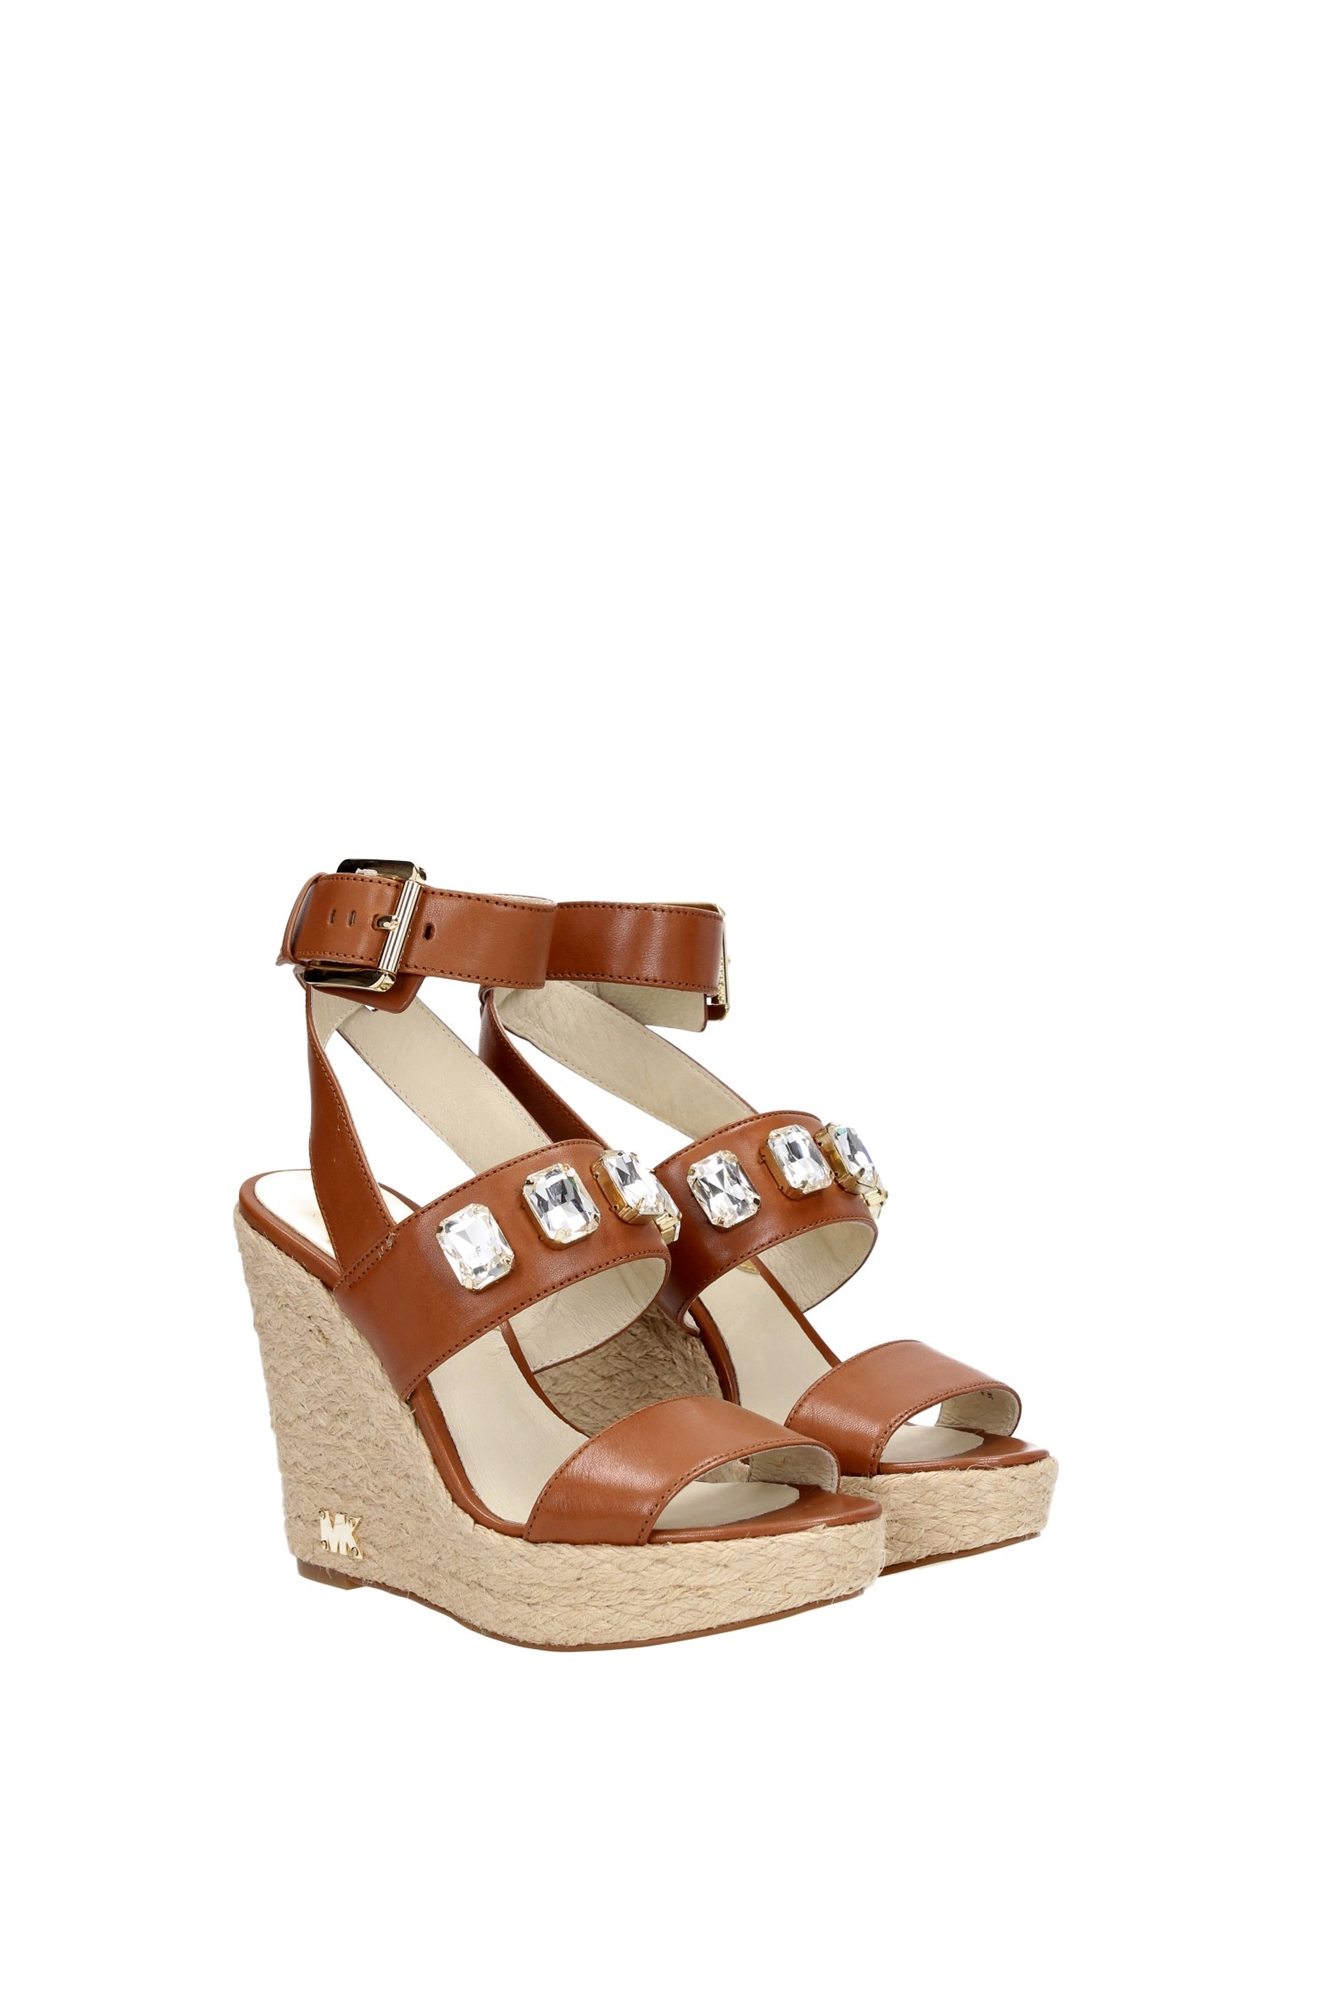 Wedges Michael Kors Women Leather Brown 40R5LYMS2LLUGGAGE